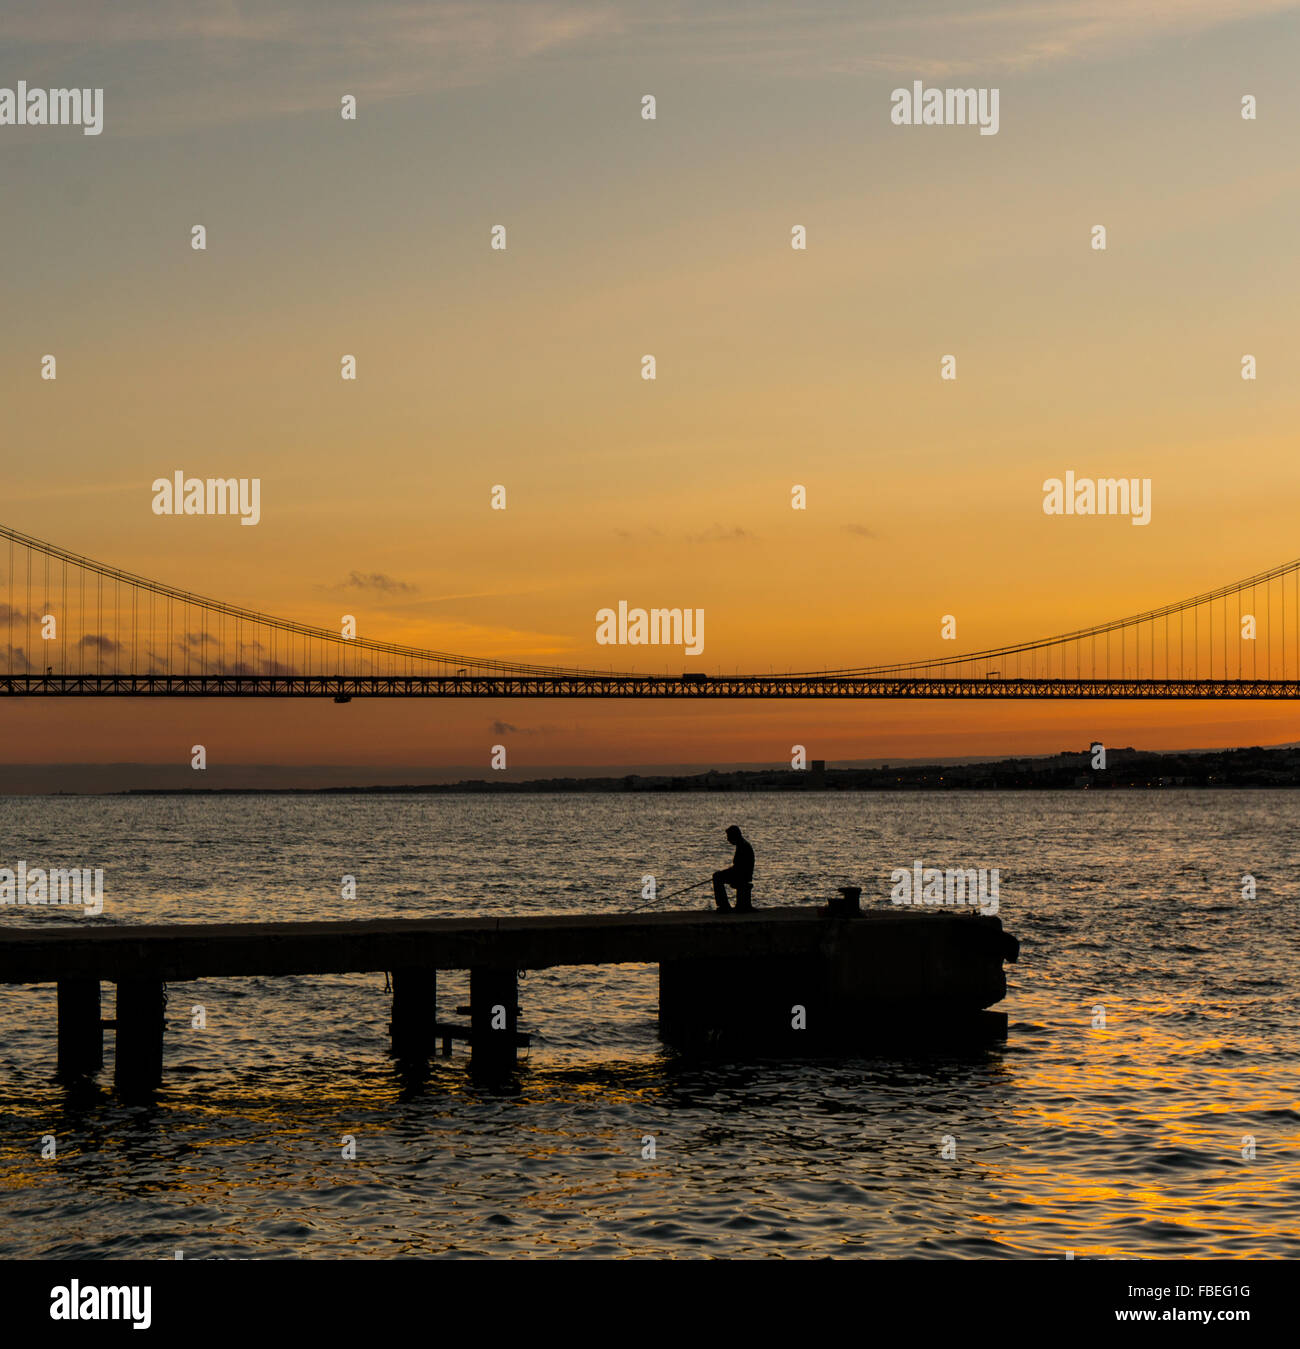 Silhouette Man On Pier Over Tagus River Against Sky During Sunset Stock Photo